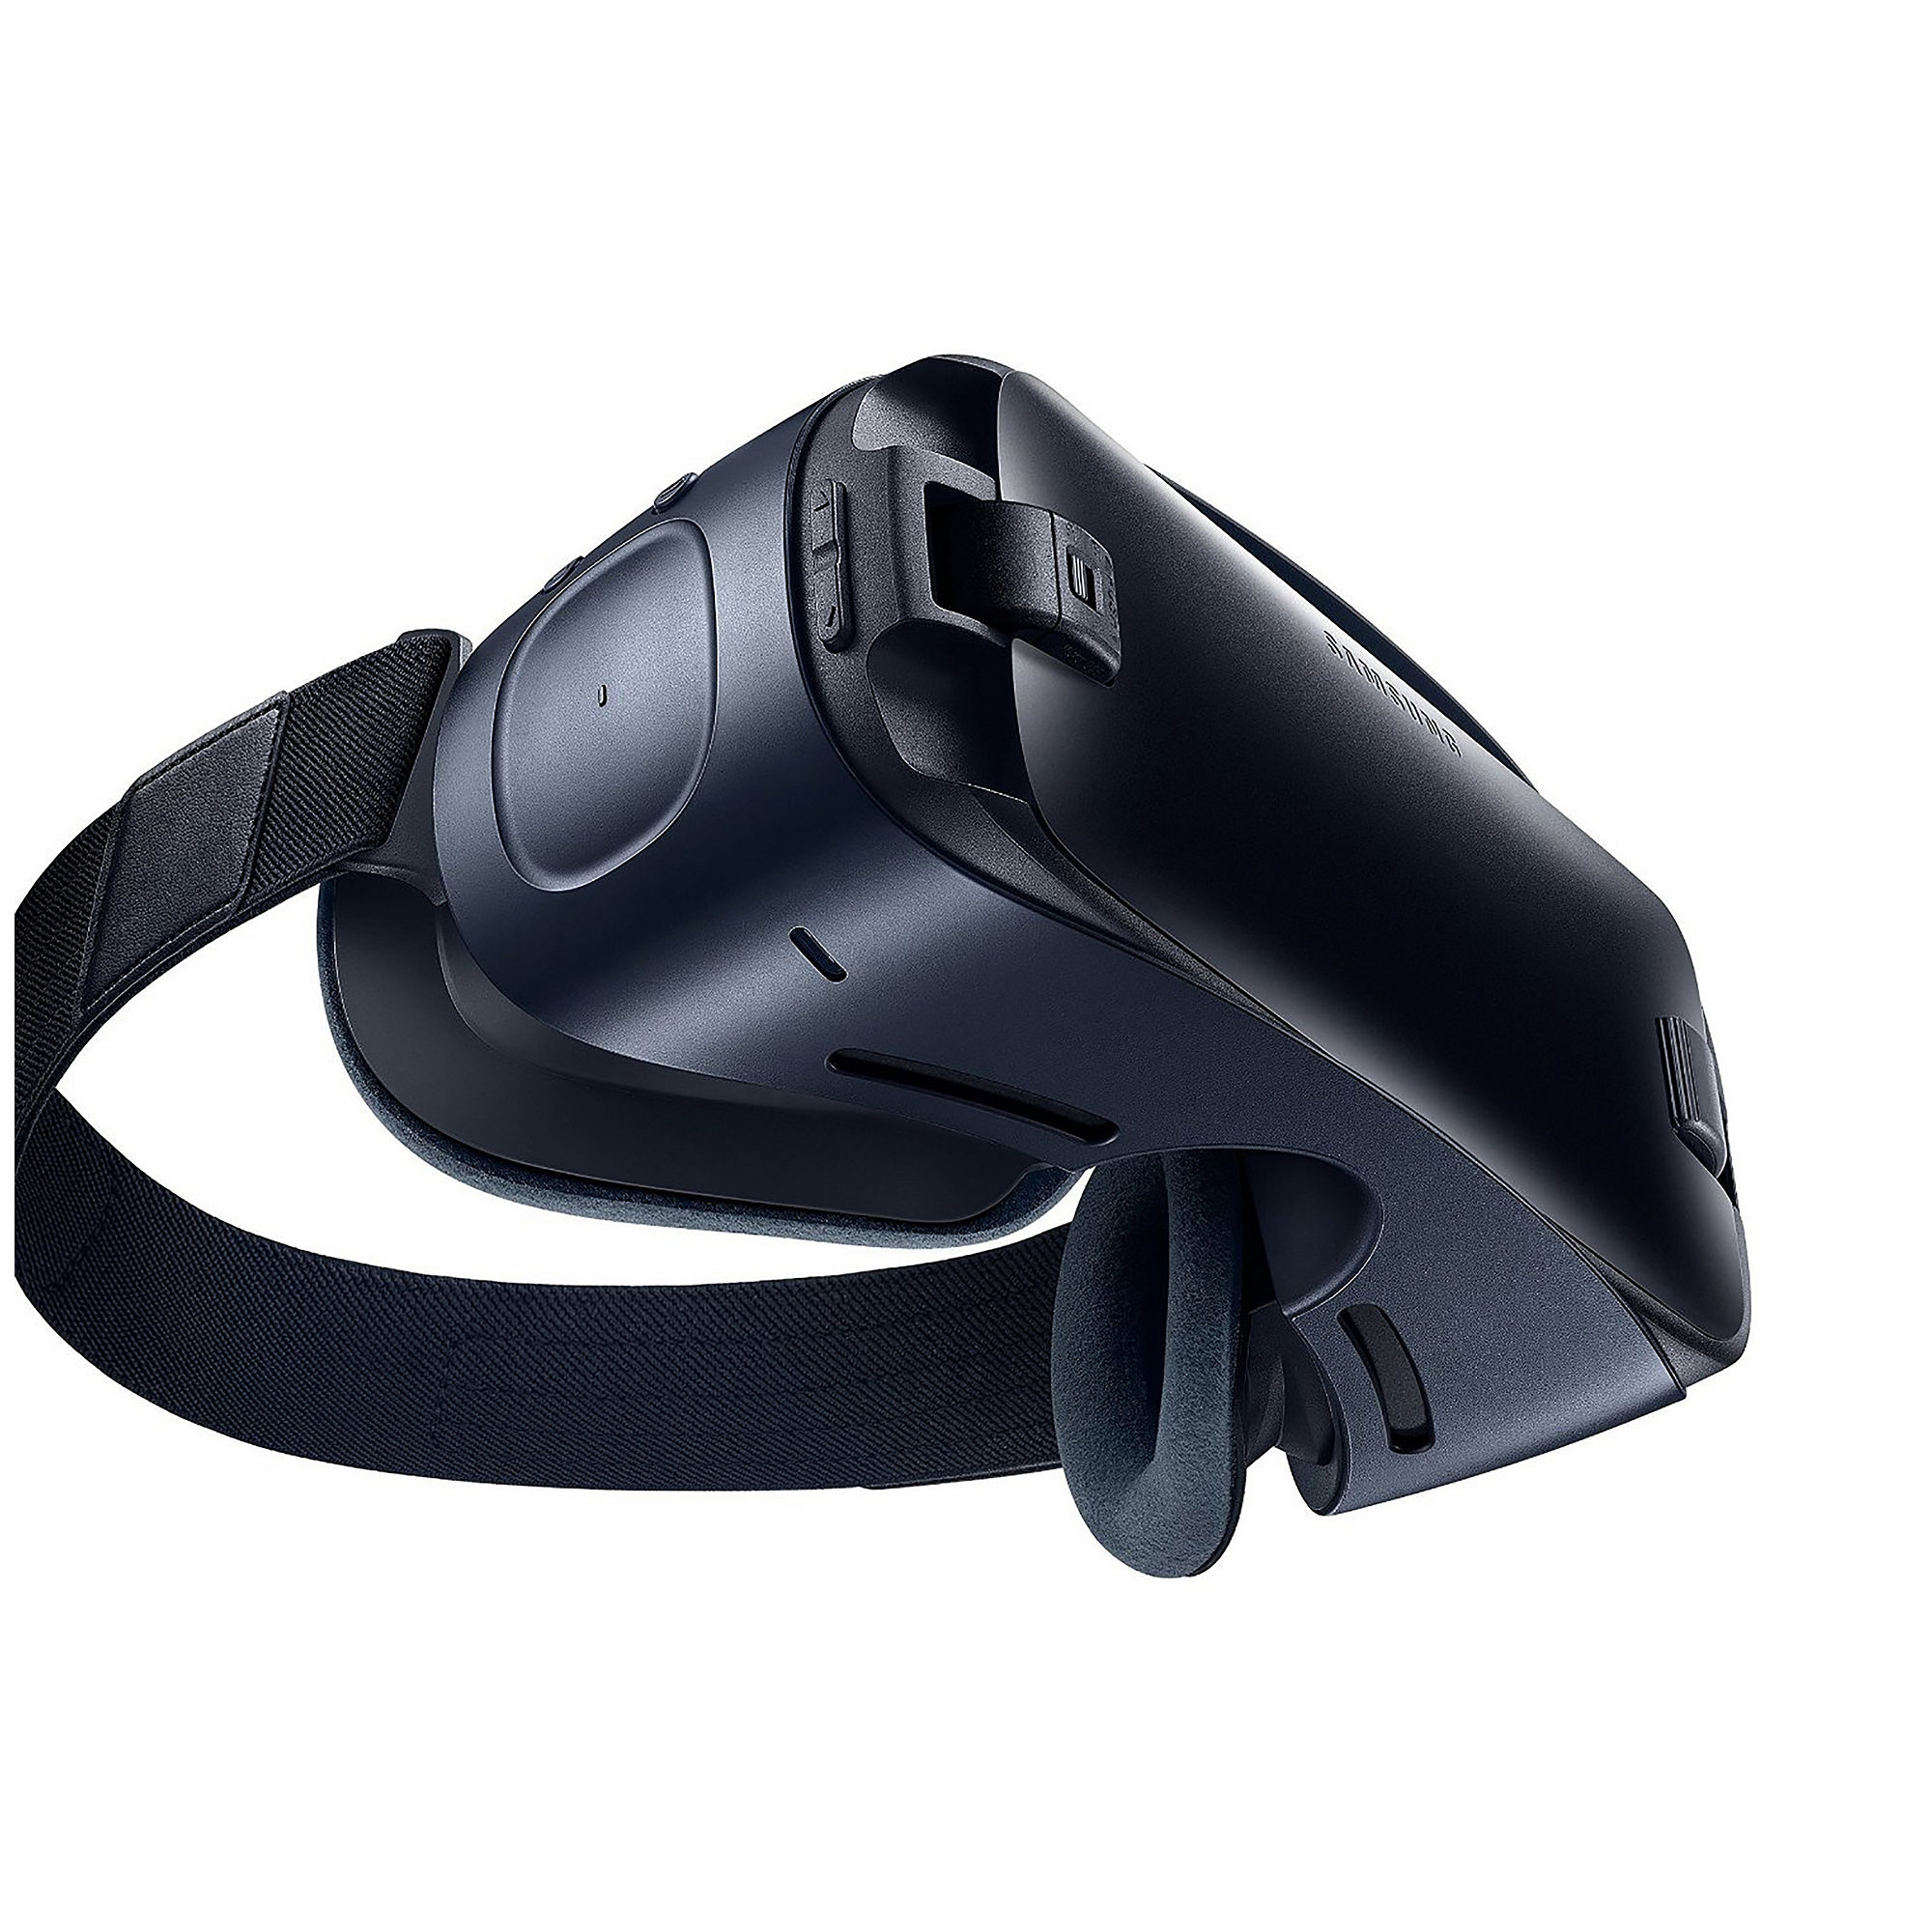 Samsung Gear VR 2016 Edition Virtual Reality Smartphone Headset